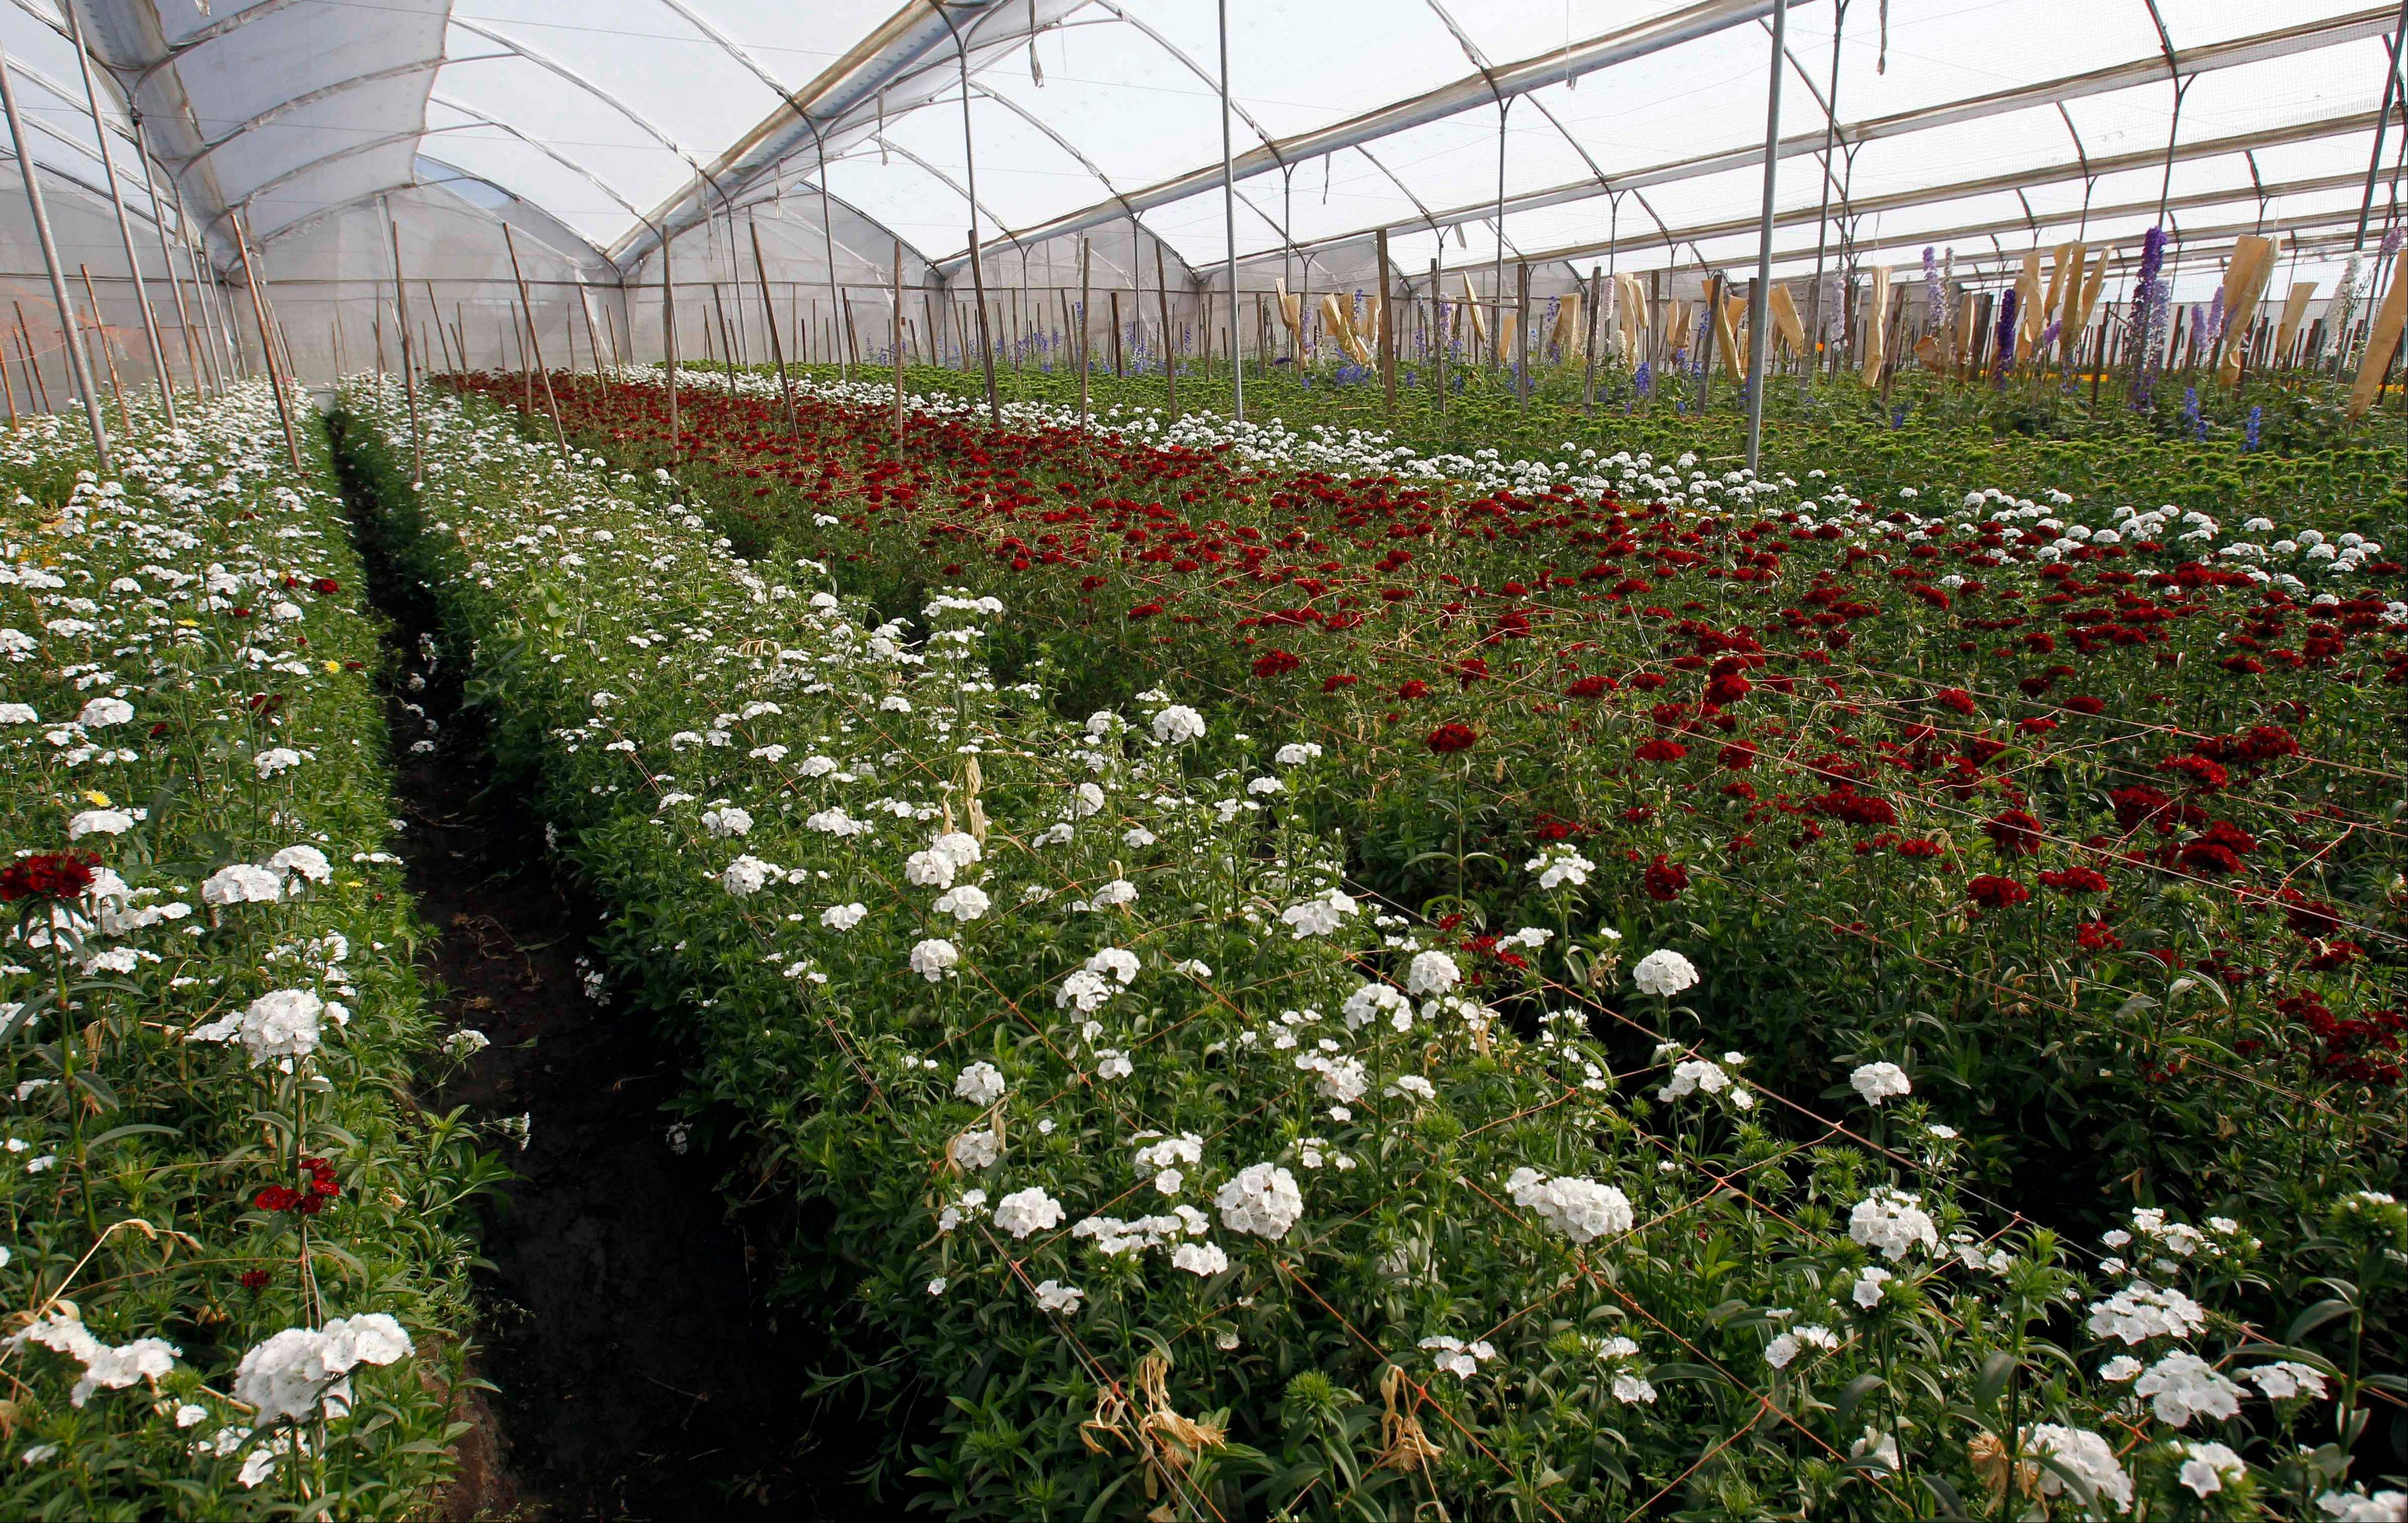 Ecuadorean flower growers in Snowden shock